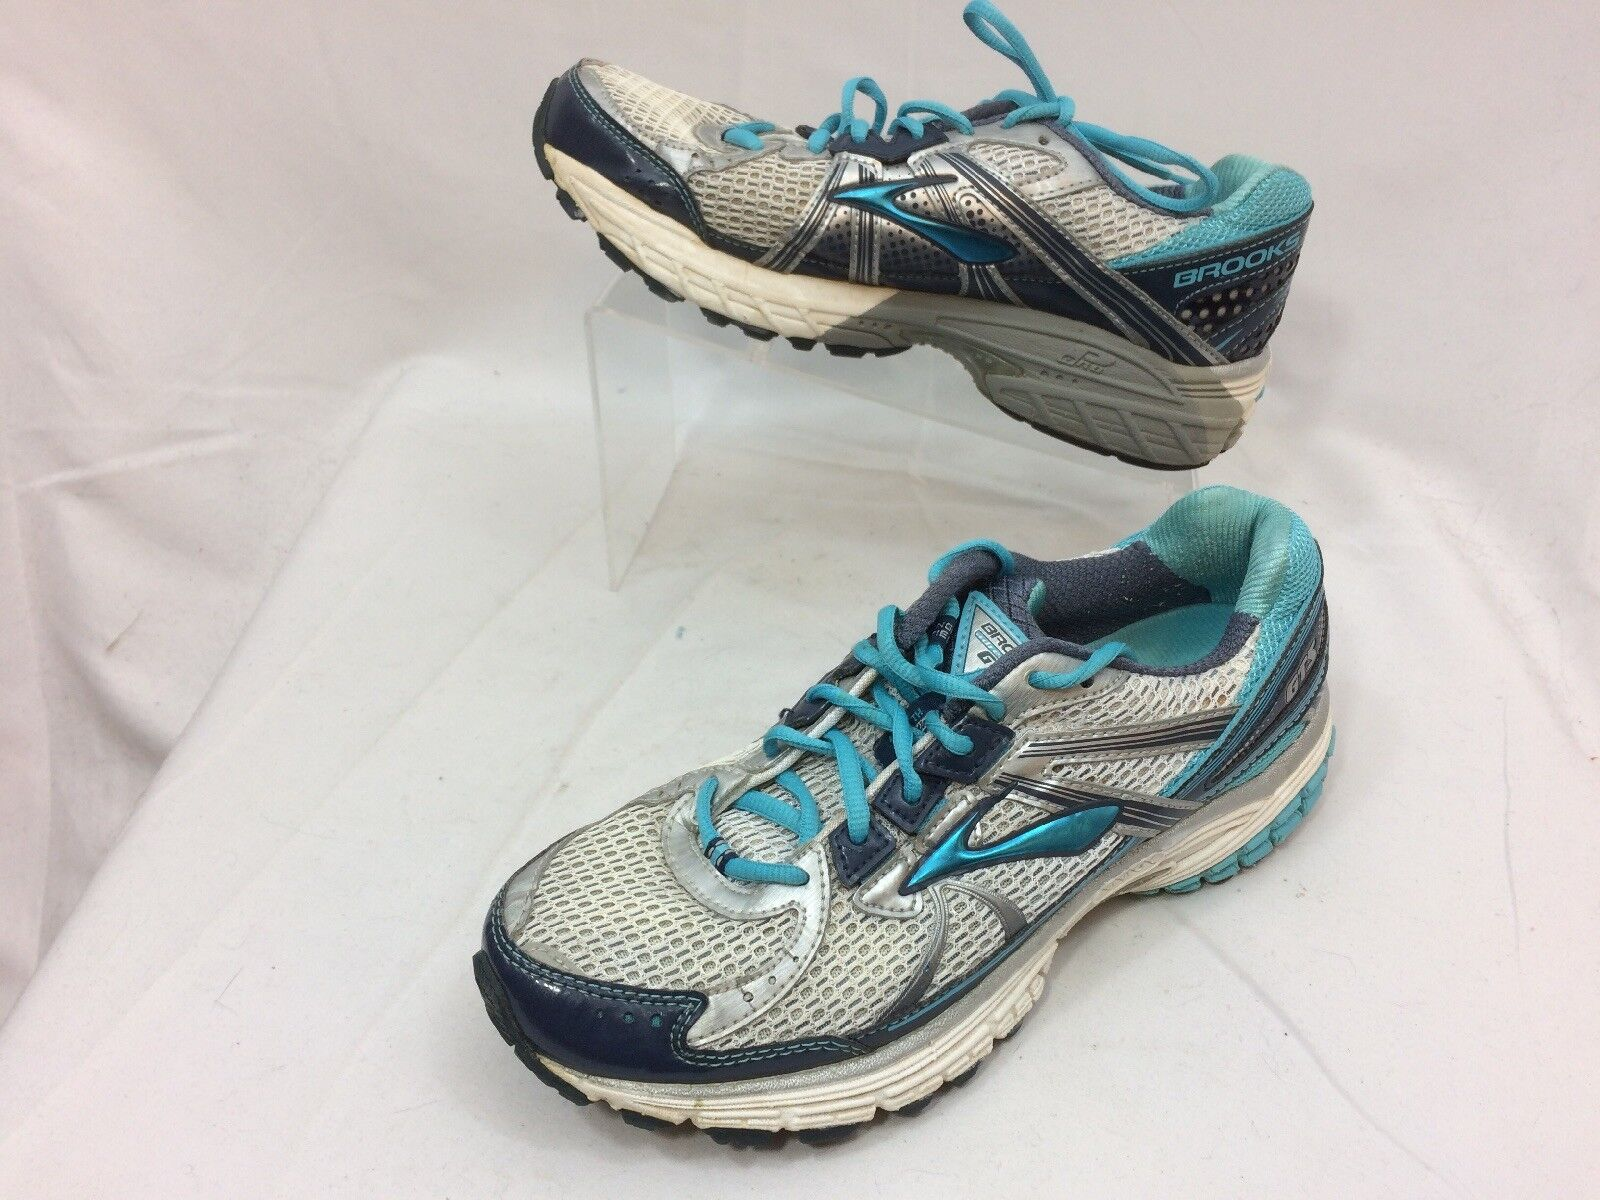 Women's BROOKS Adrenaline GTS 13 1201231b444 Athletic Running shoes Size 9.5 US